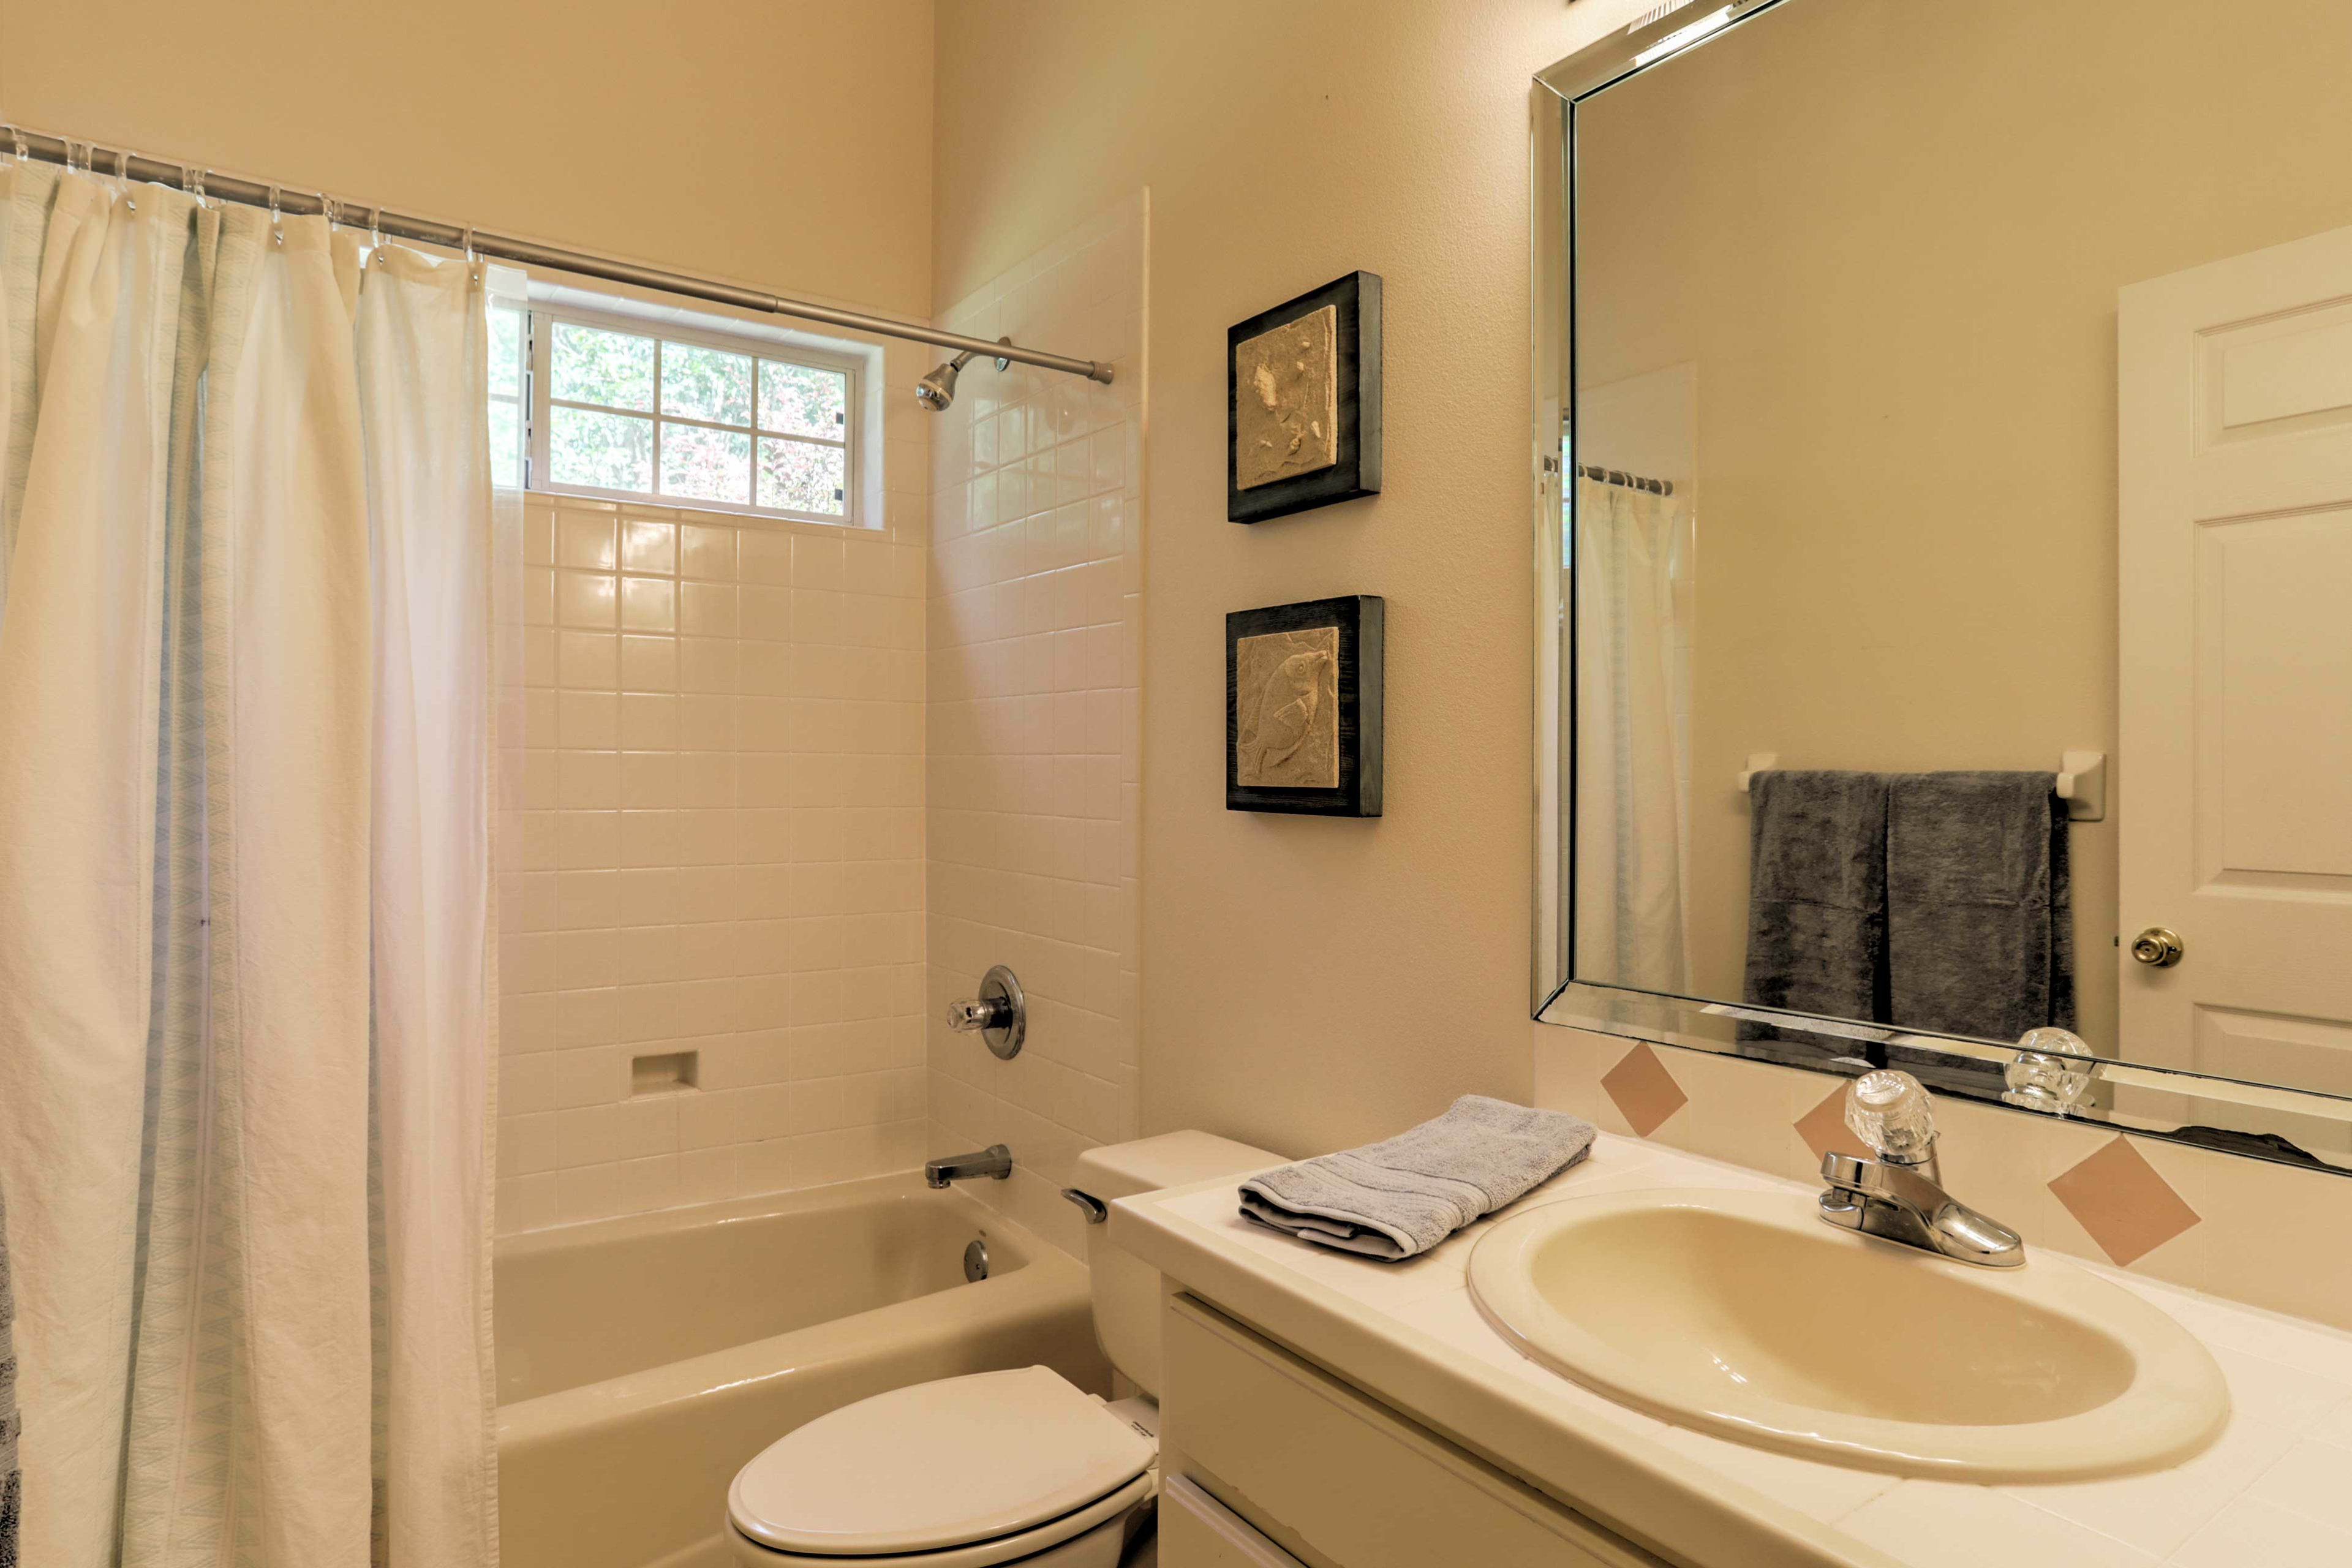 The 2nd full bathroom offers a single sink, large vanity, and tub/shower combo.